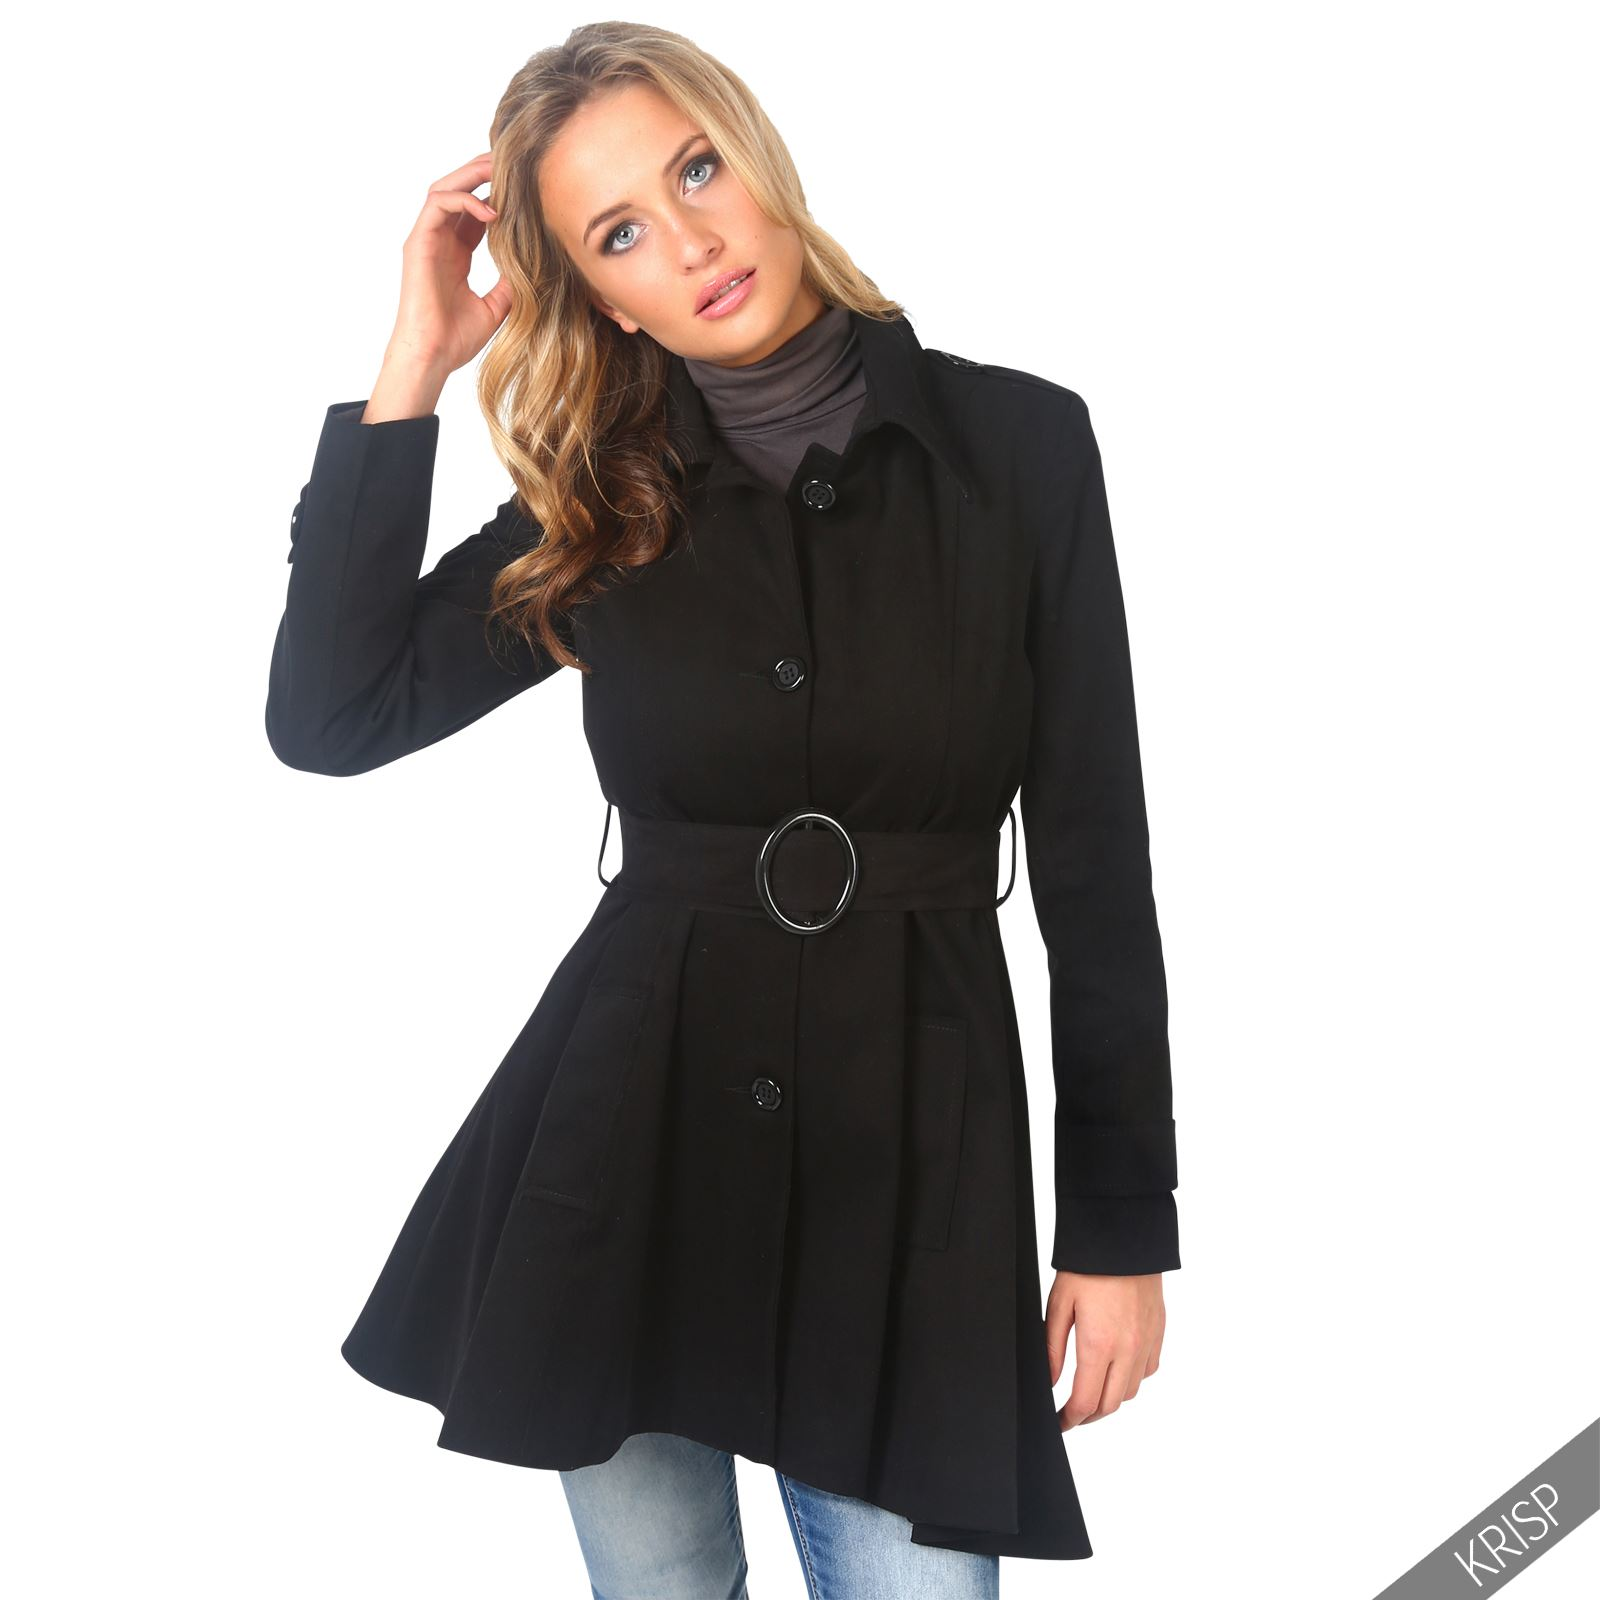 UK-Ladies-Classic-Asymmetric-Mac-Jacket-Womens-Military-Belted-Trench-Coat